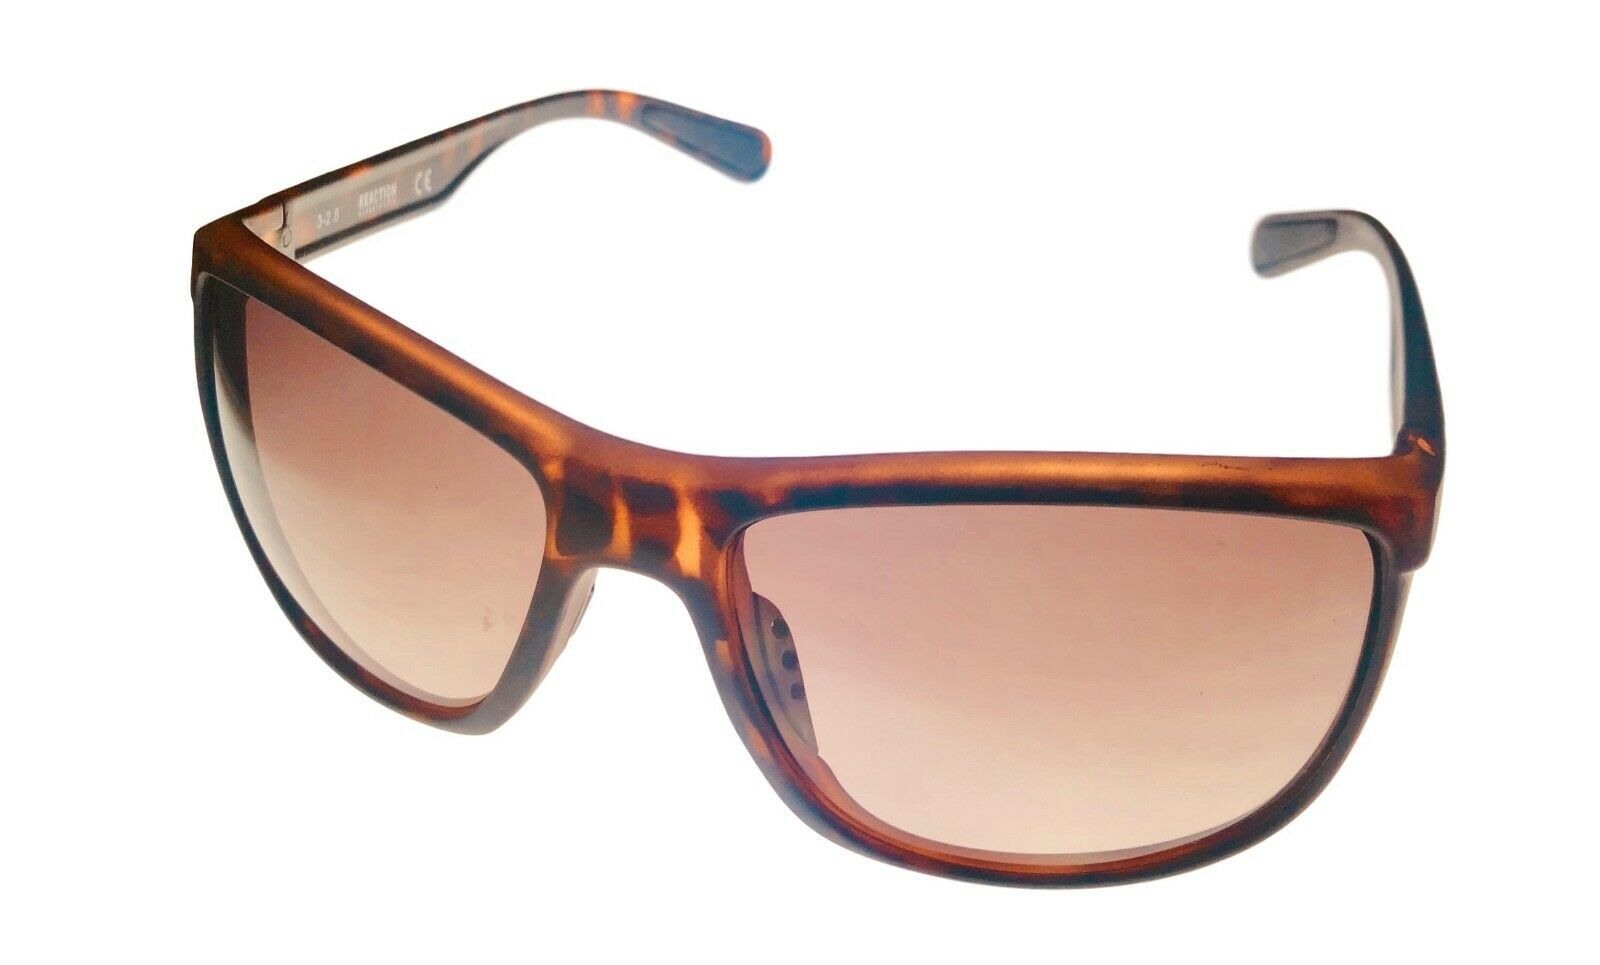 Primary image for Kenneth Cole Reaction Mens Sunglass Matte Tortoise Wrap, Gradient Len KC1368 52